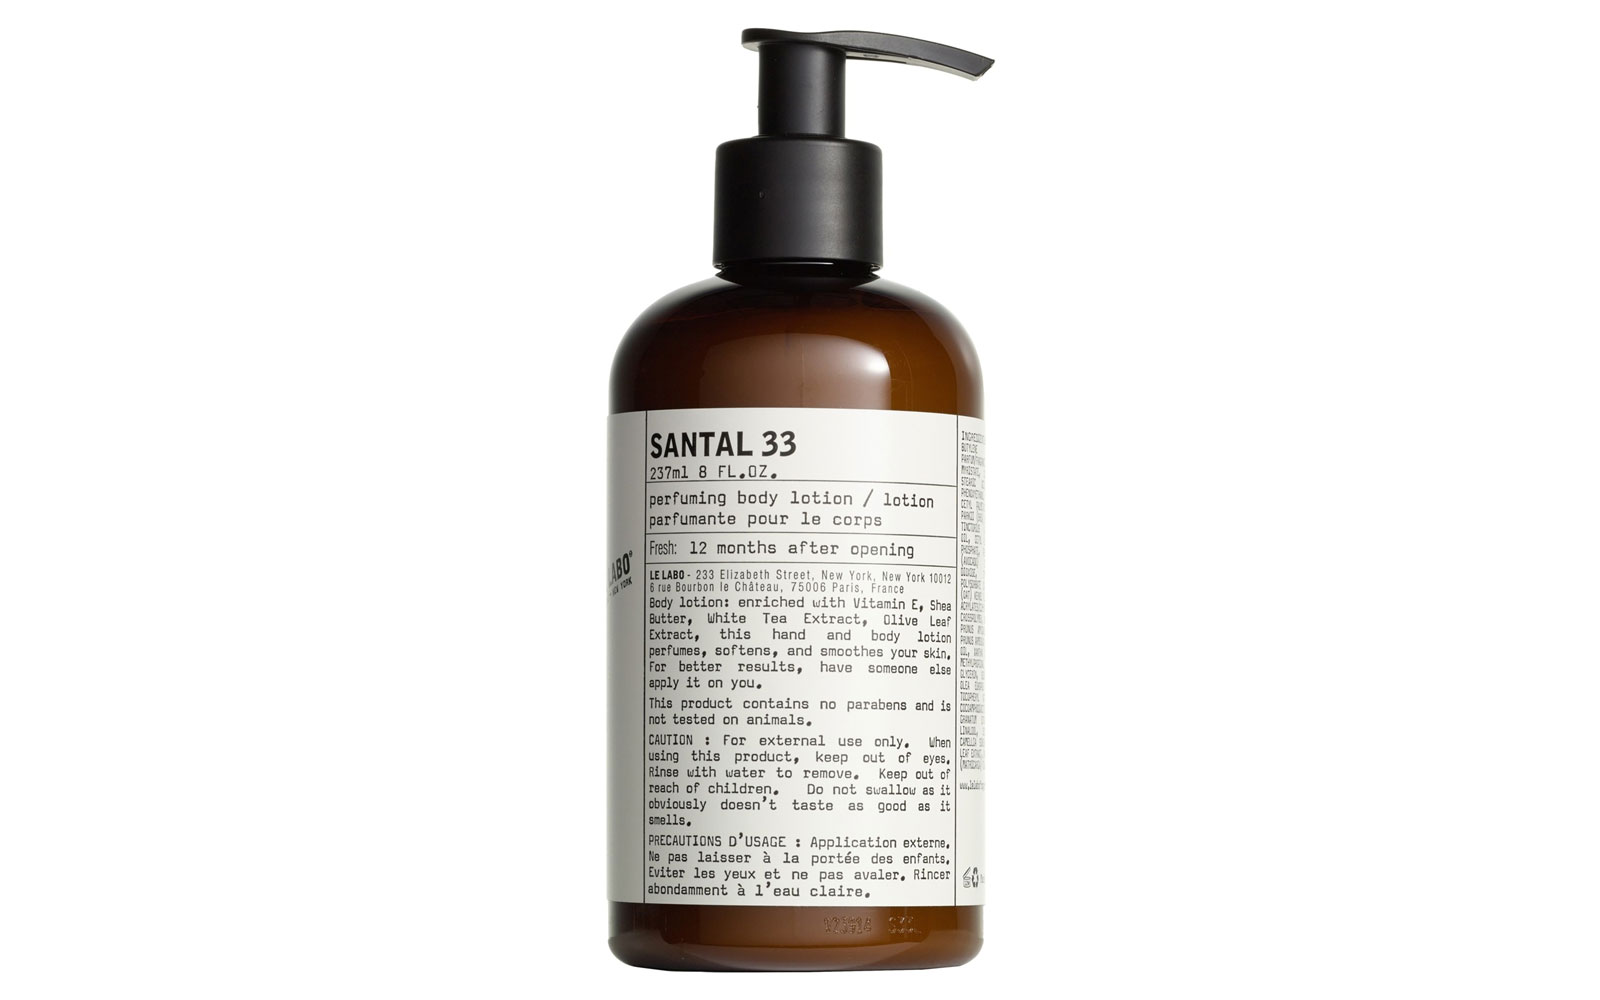 Le Labo 'Santal 33' Hand and Body Lotion